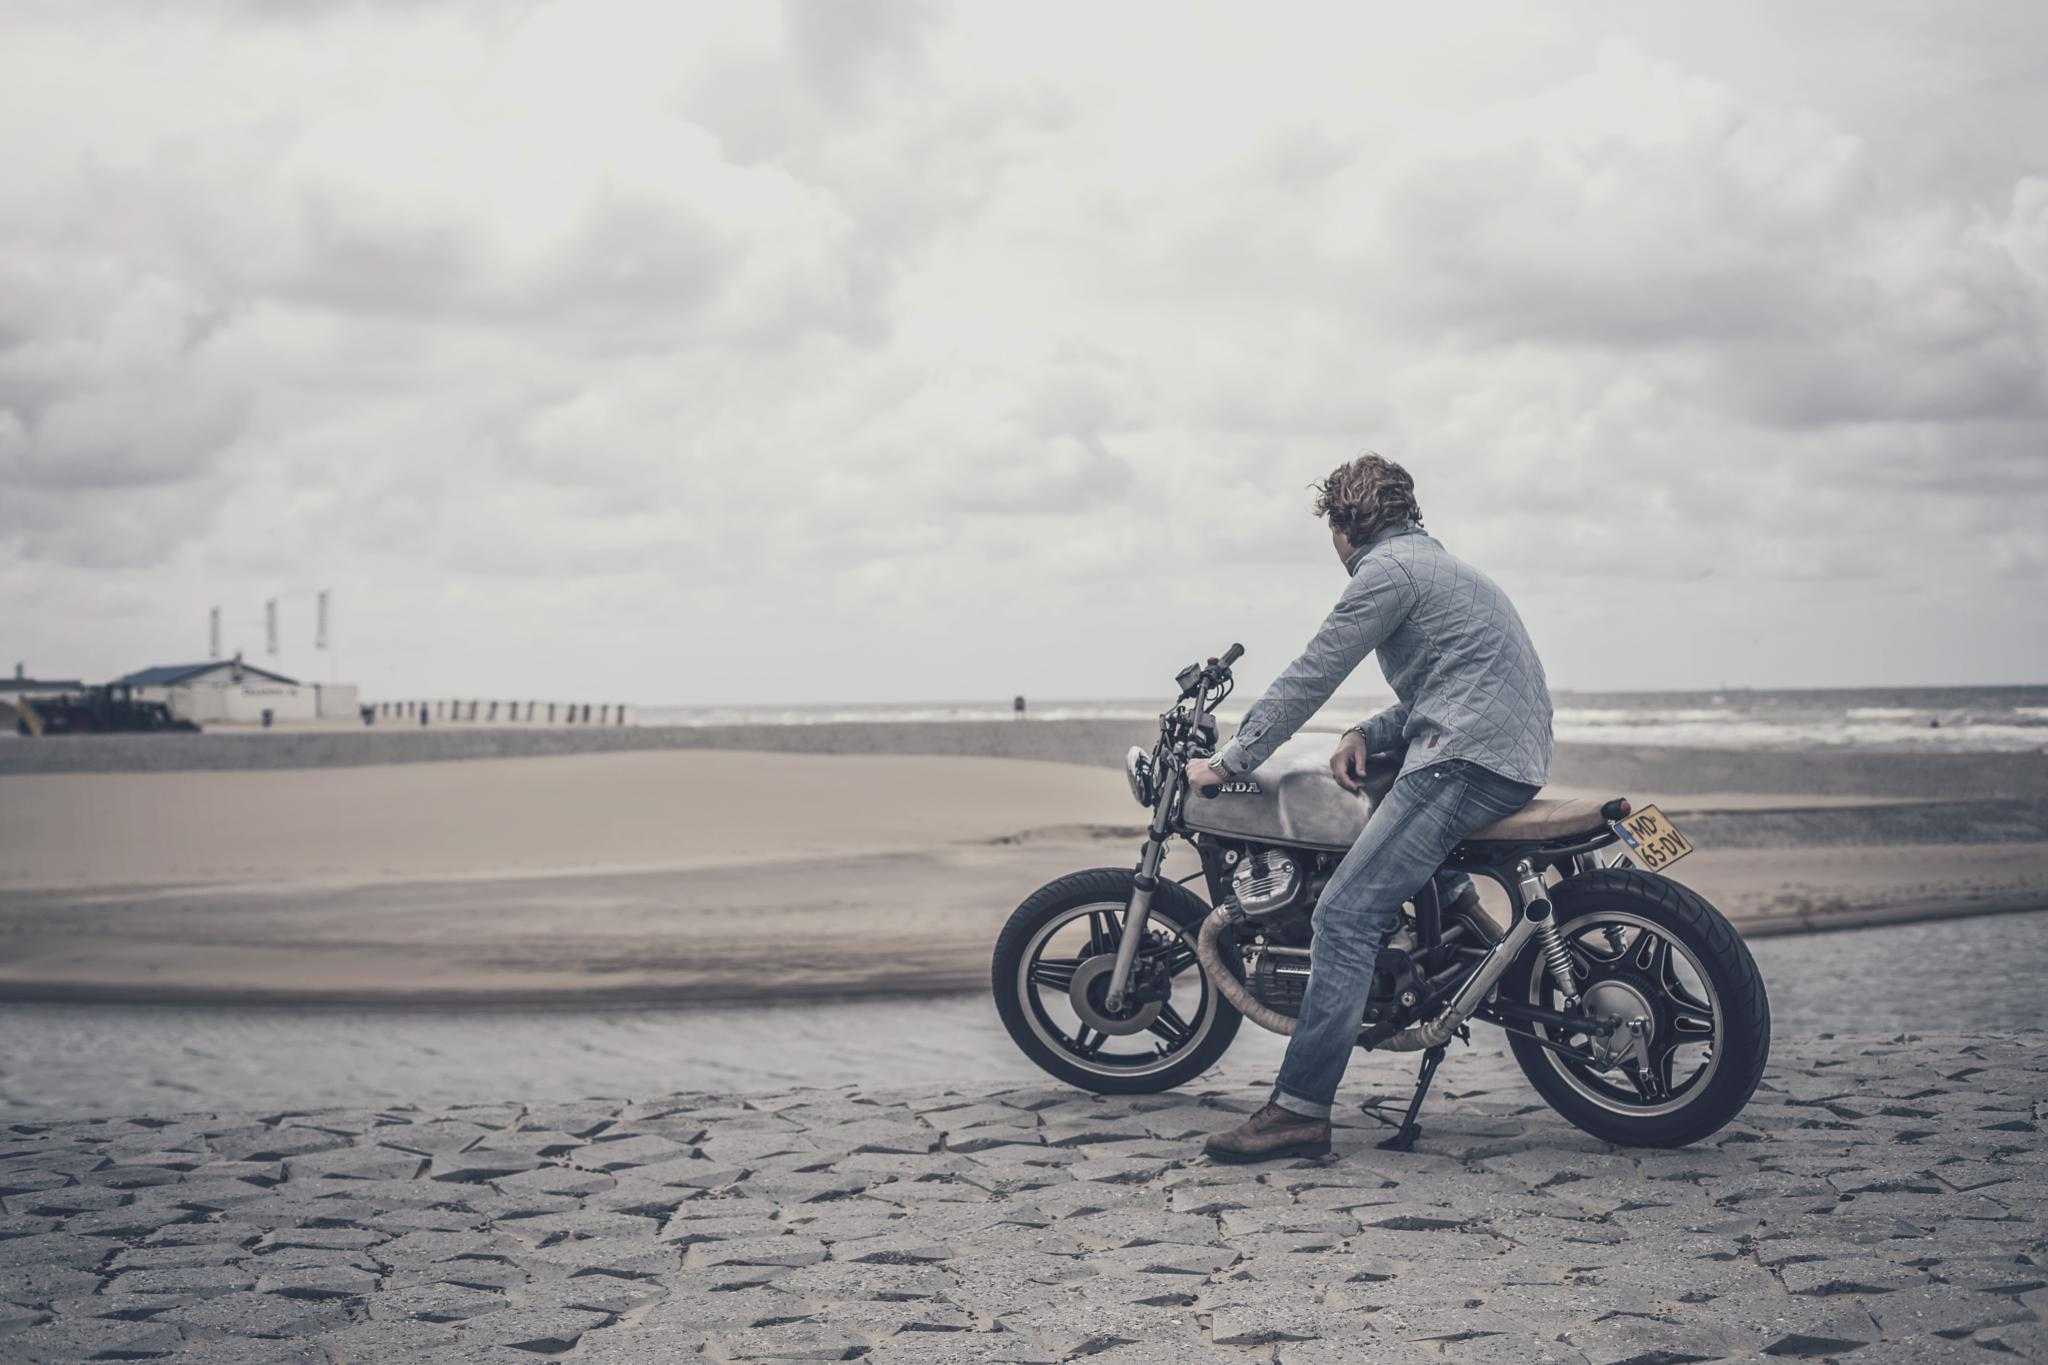 Caferacer by Bas Duijs